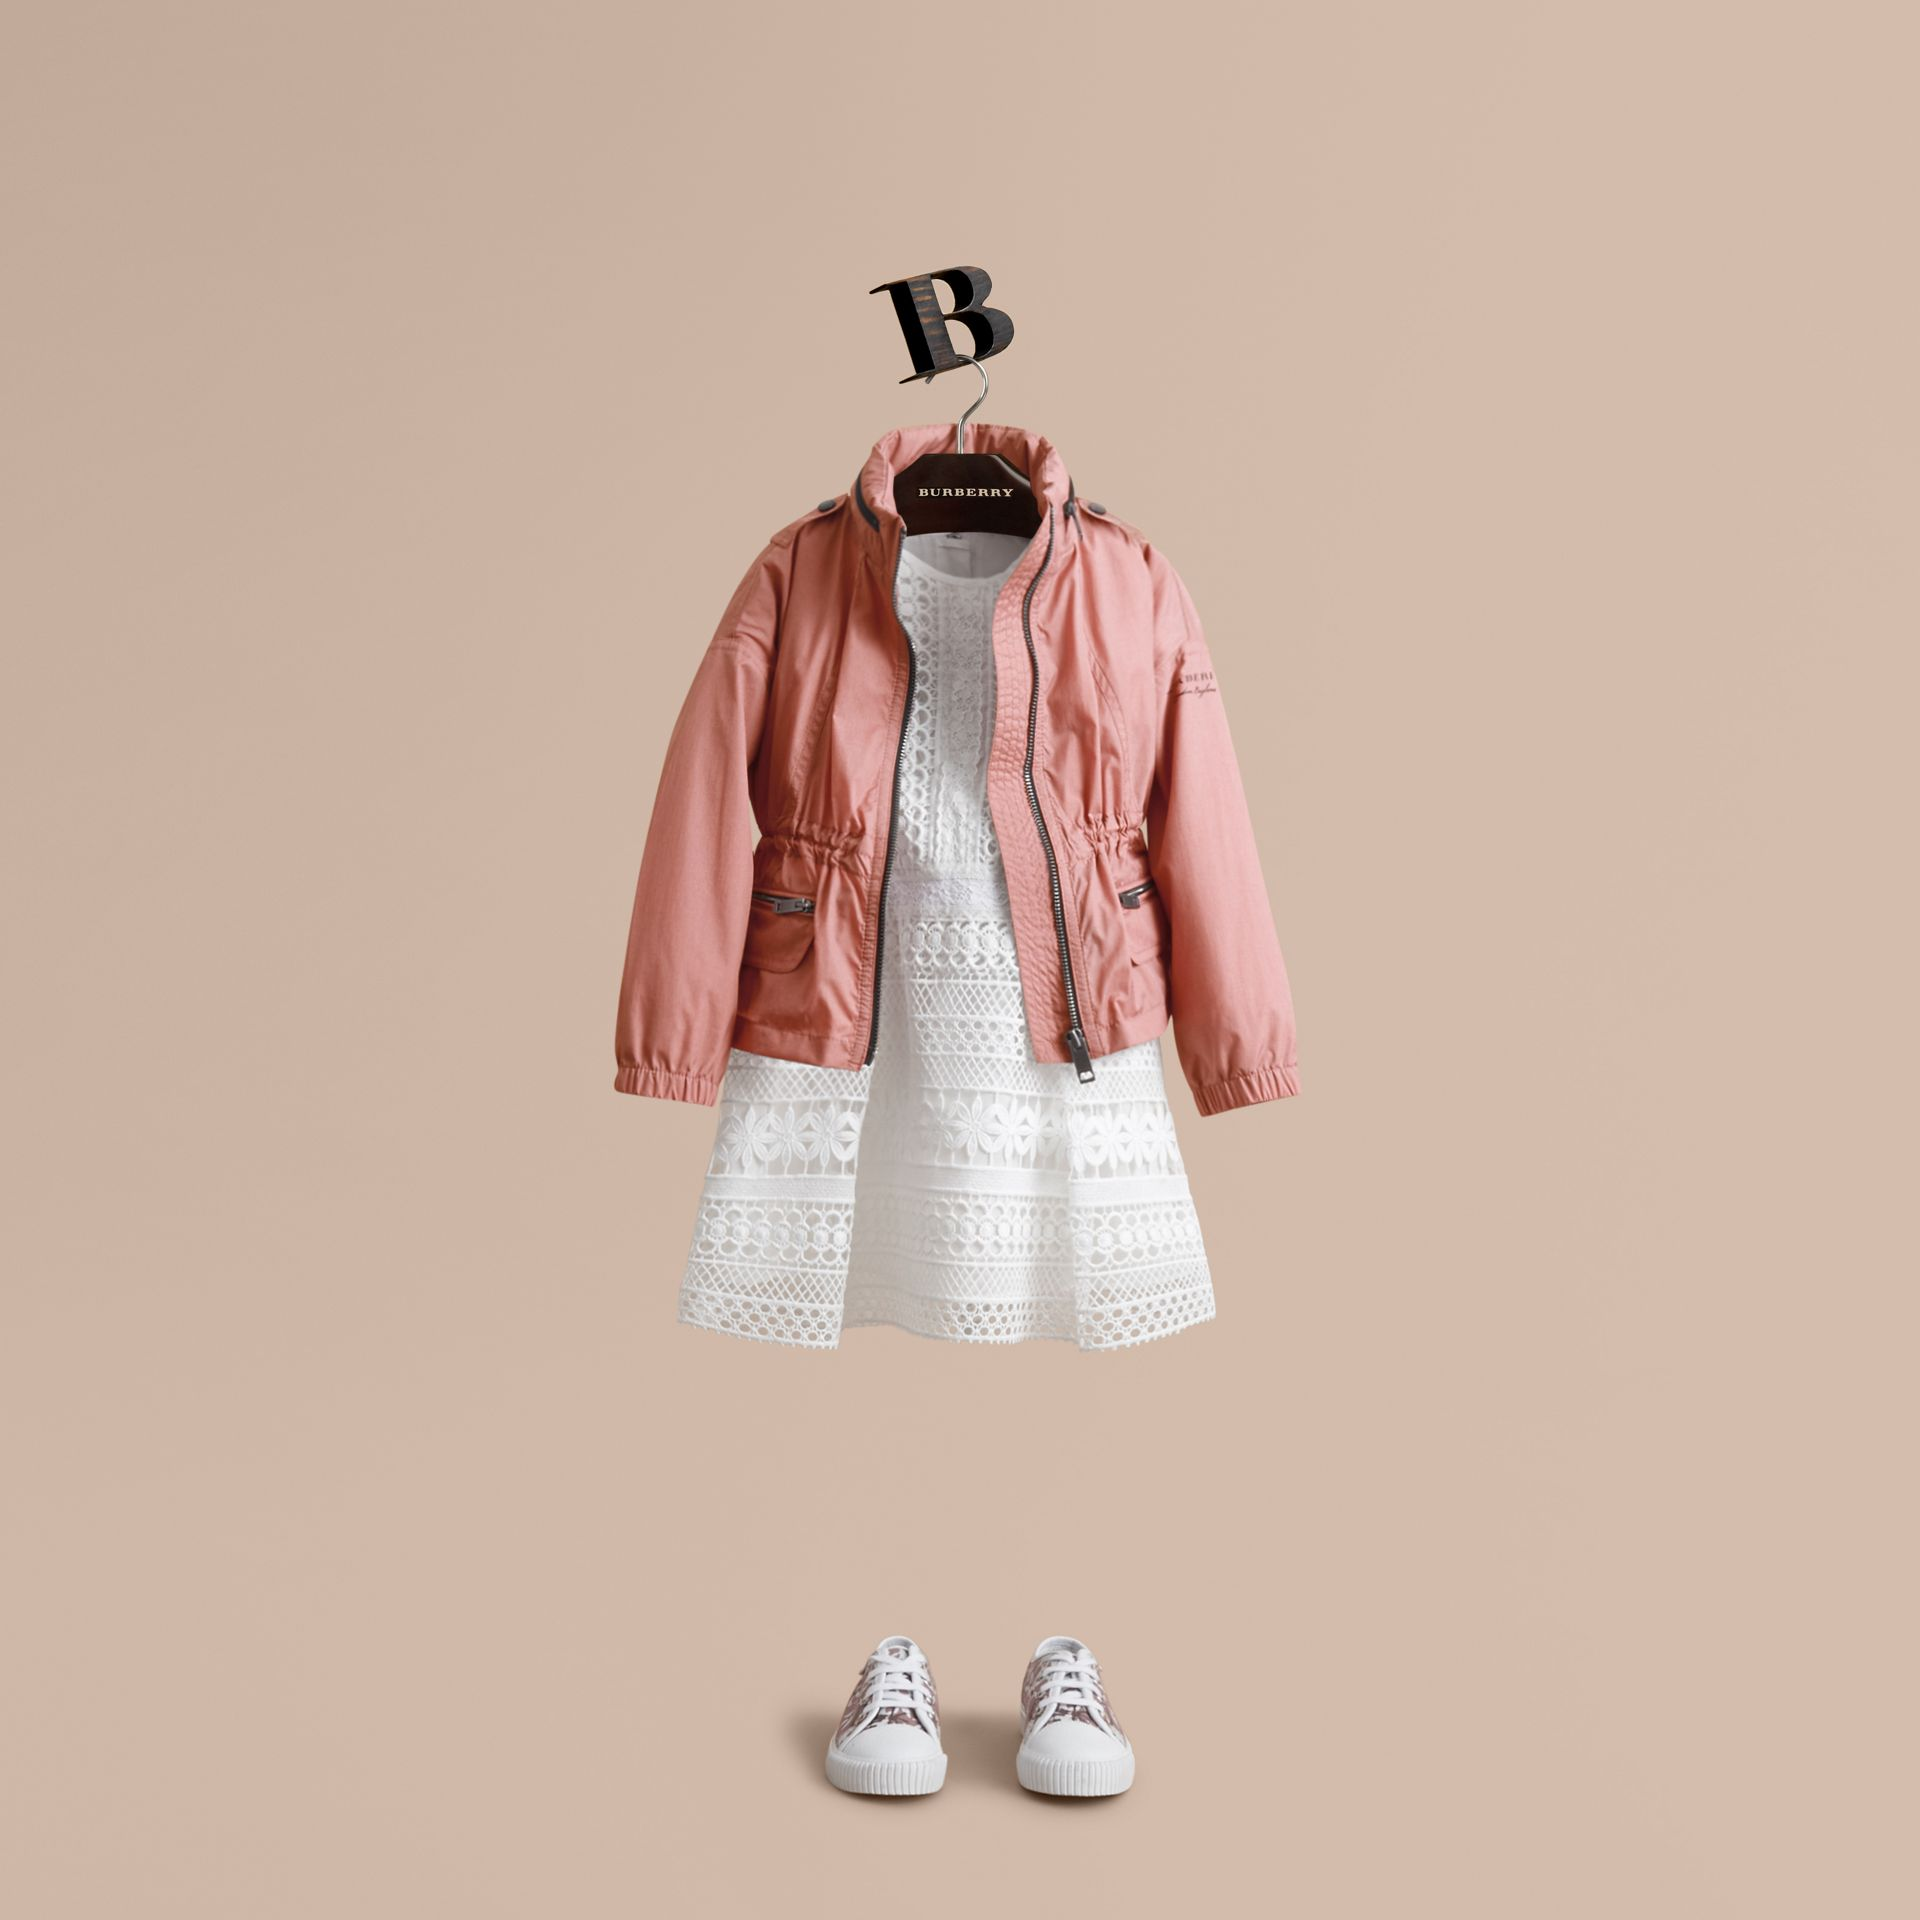 Veste imperméable avec détails check et capuche repliable (Rose Pink) - Fille | Burberry - photo de la galerie 1